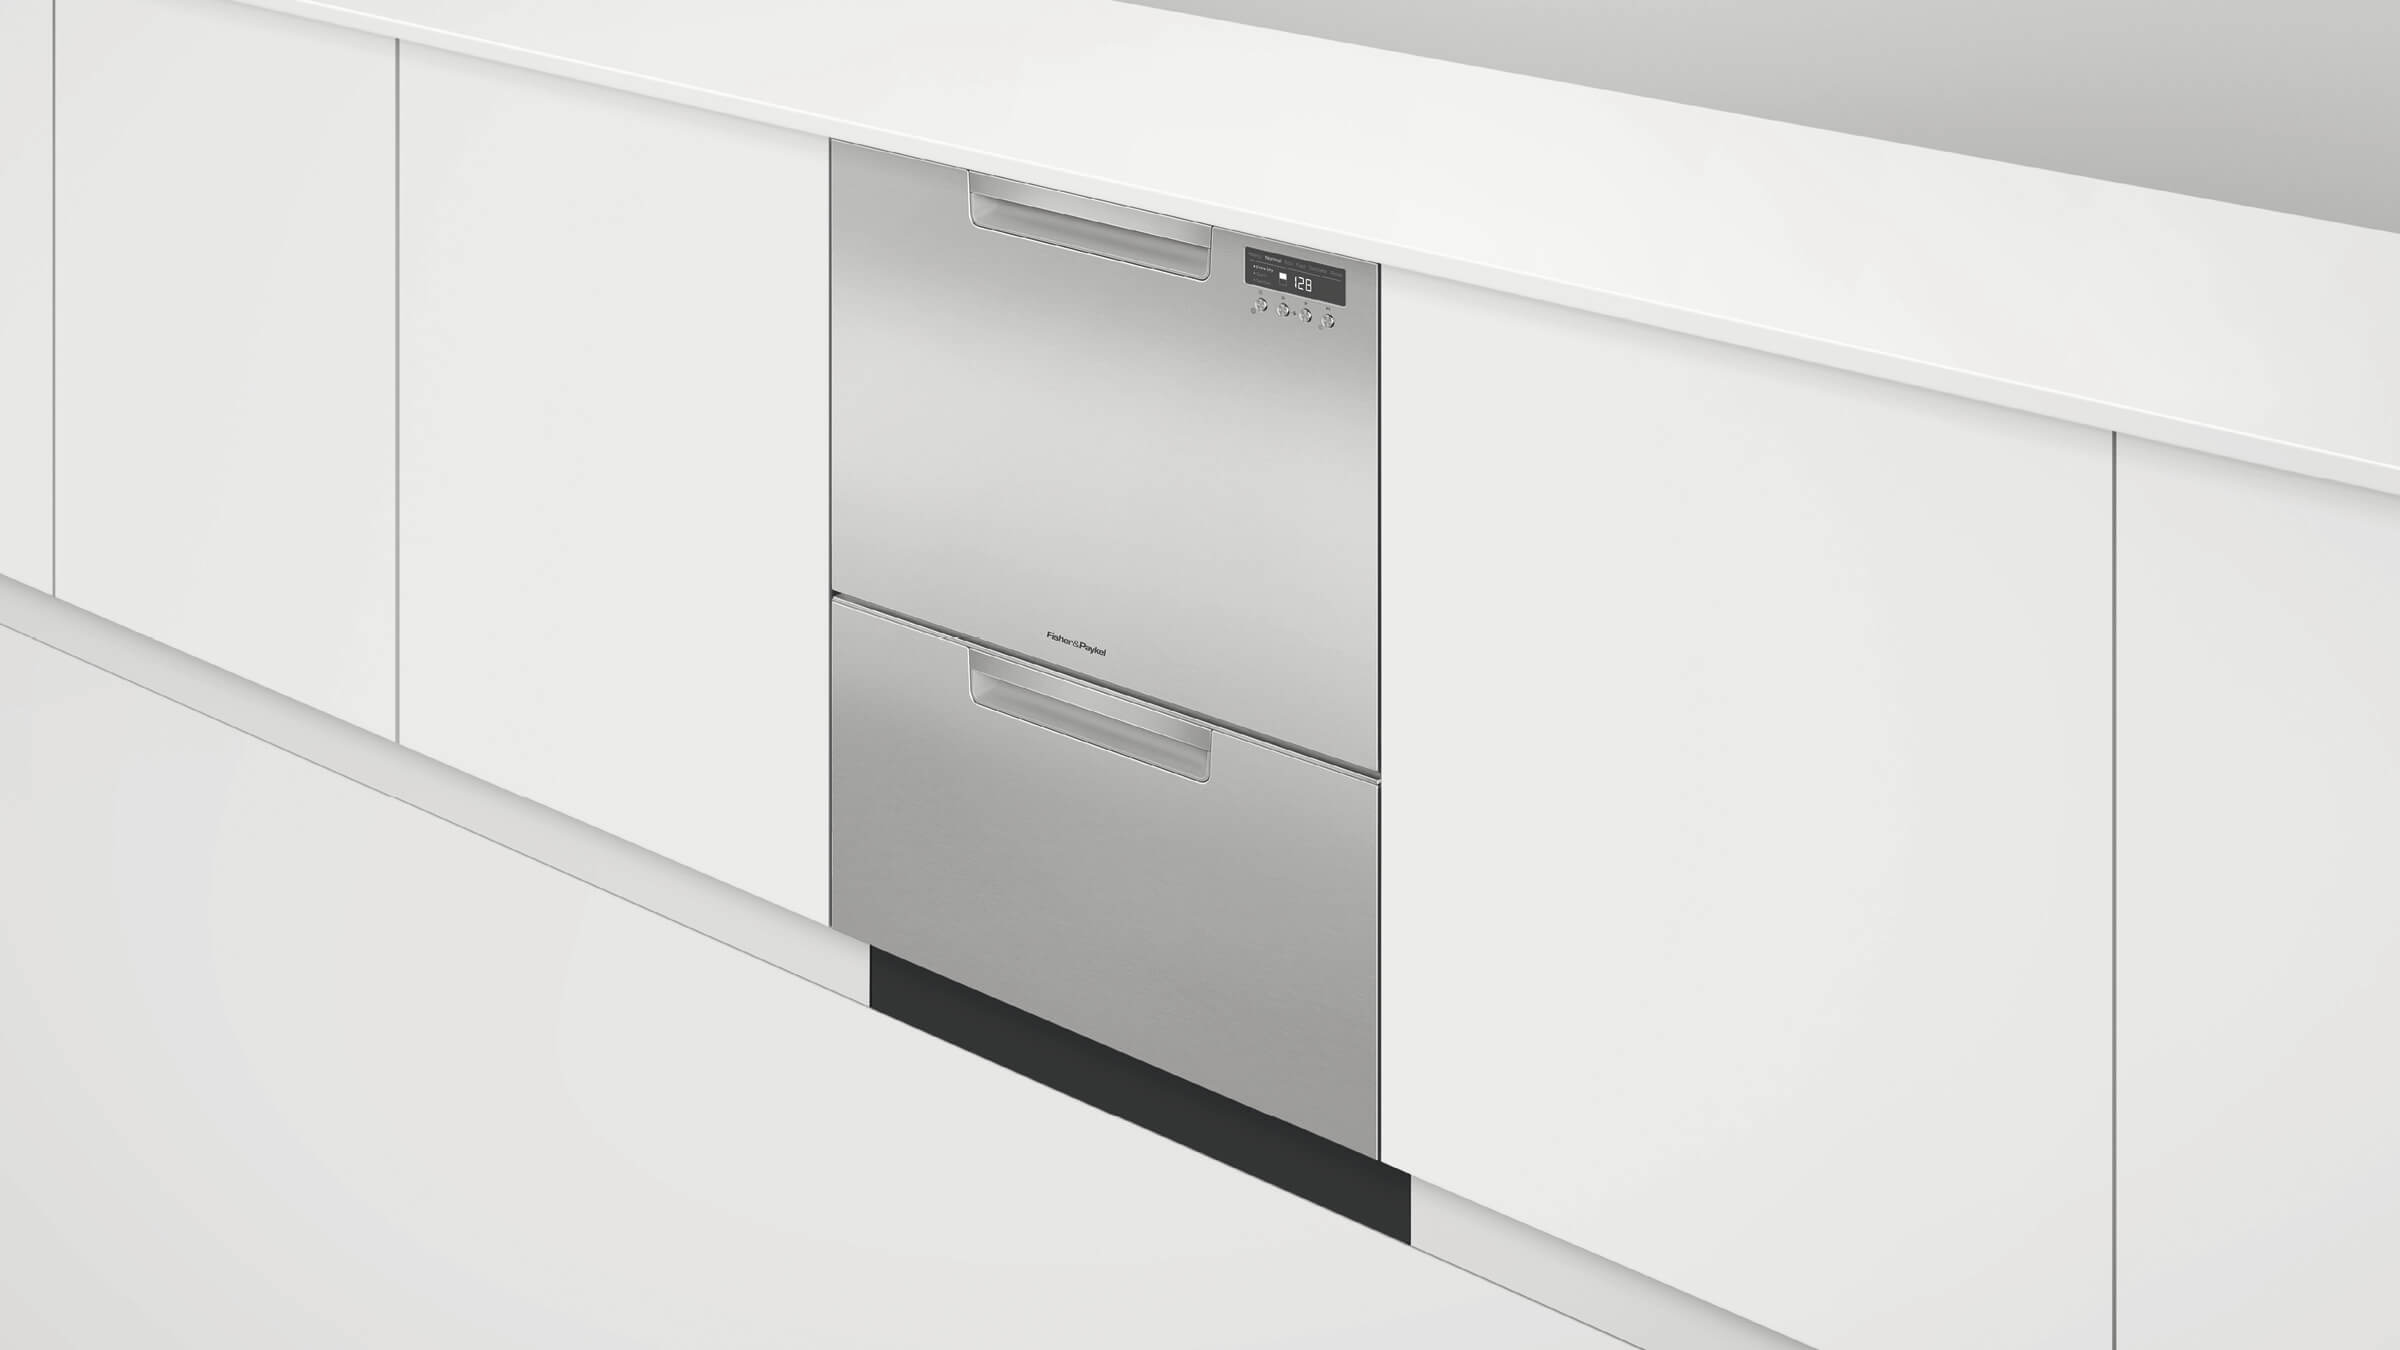 Tall Double DishDrawer dishwasher incl Sanitize, Extra Dry, full flex racking and water softener